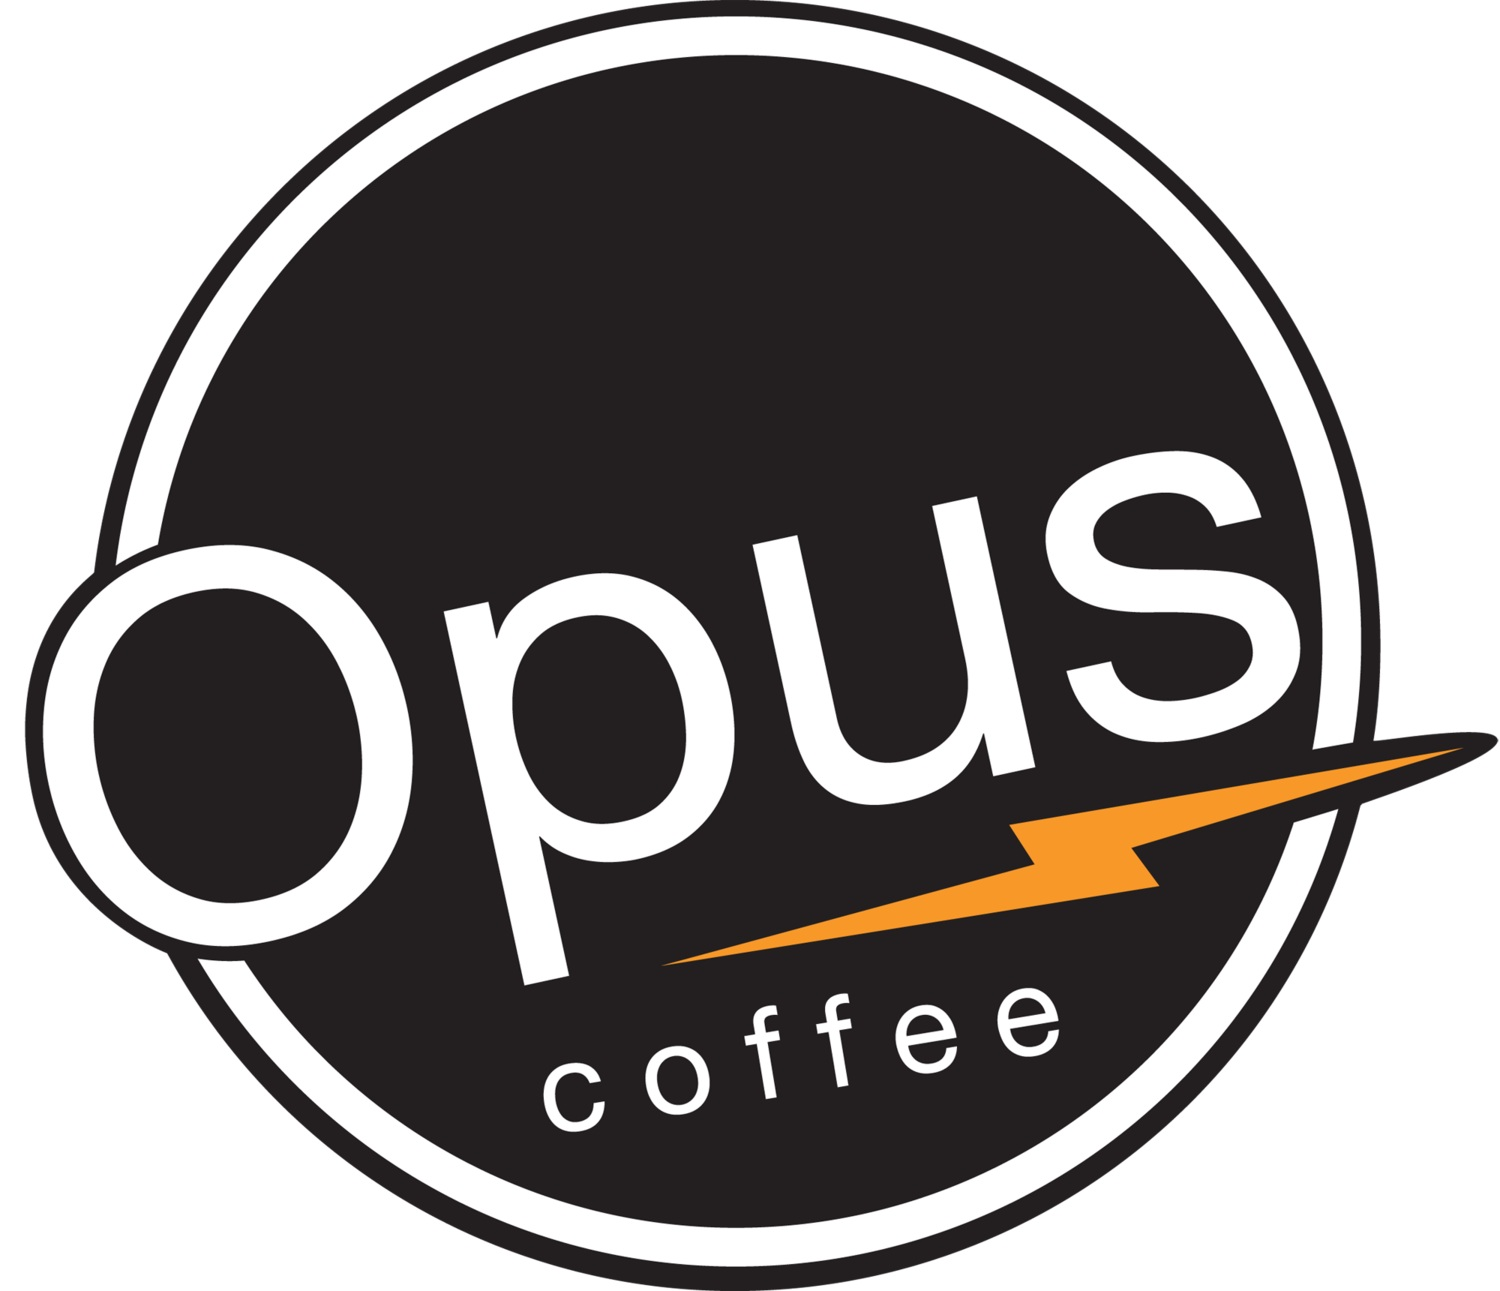 Opus Coffee - OPENING at 4th Ave Food Park - FALL 2019409 SW 4th AveGainesville, FL 32601opuscoffee@gmail.comWebsiteFacebookInstagramTwitter